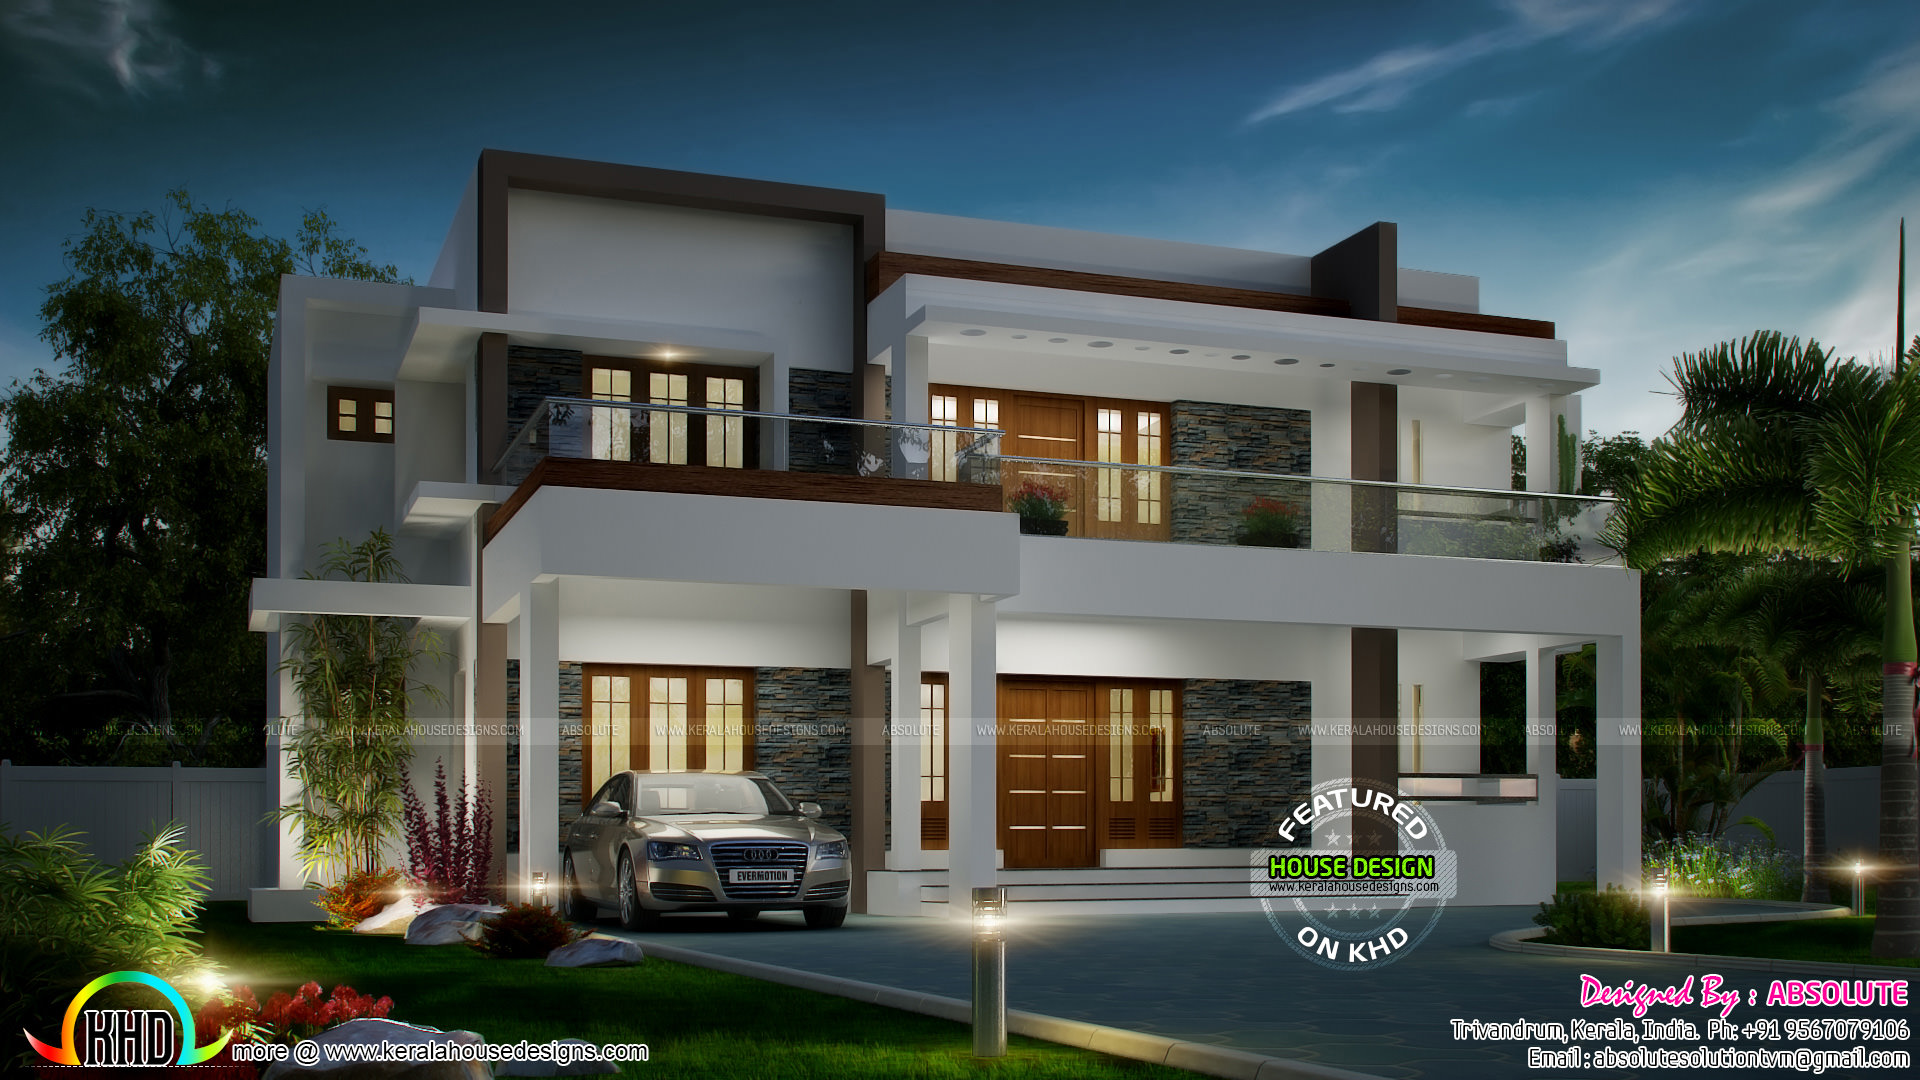 See floor plans read more please follow kerala home design - Floor Plan Available Yes Cost Of Construction 1900 Sq Ft See Floor Plans And Facilities Read More Please Follow Kerala Home Design